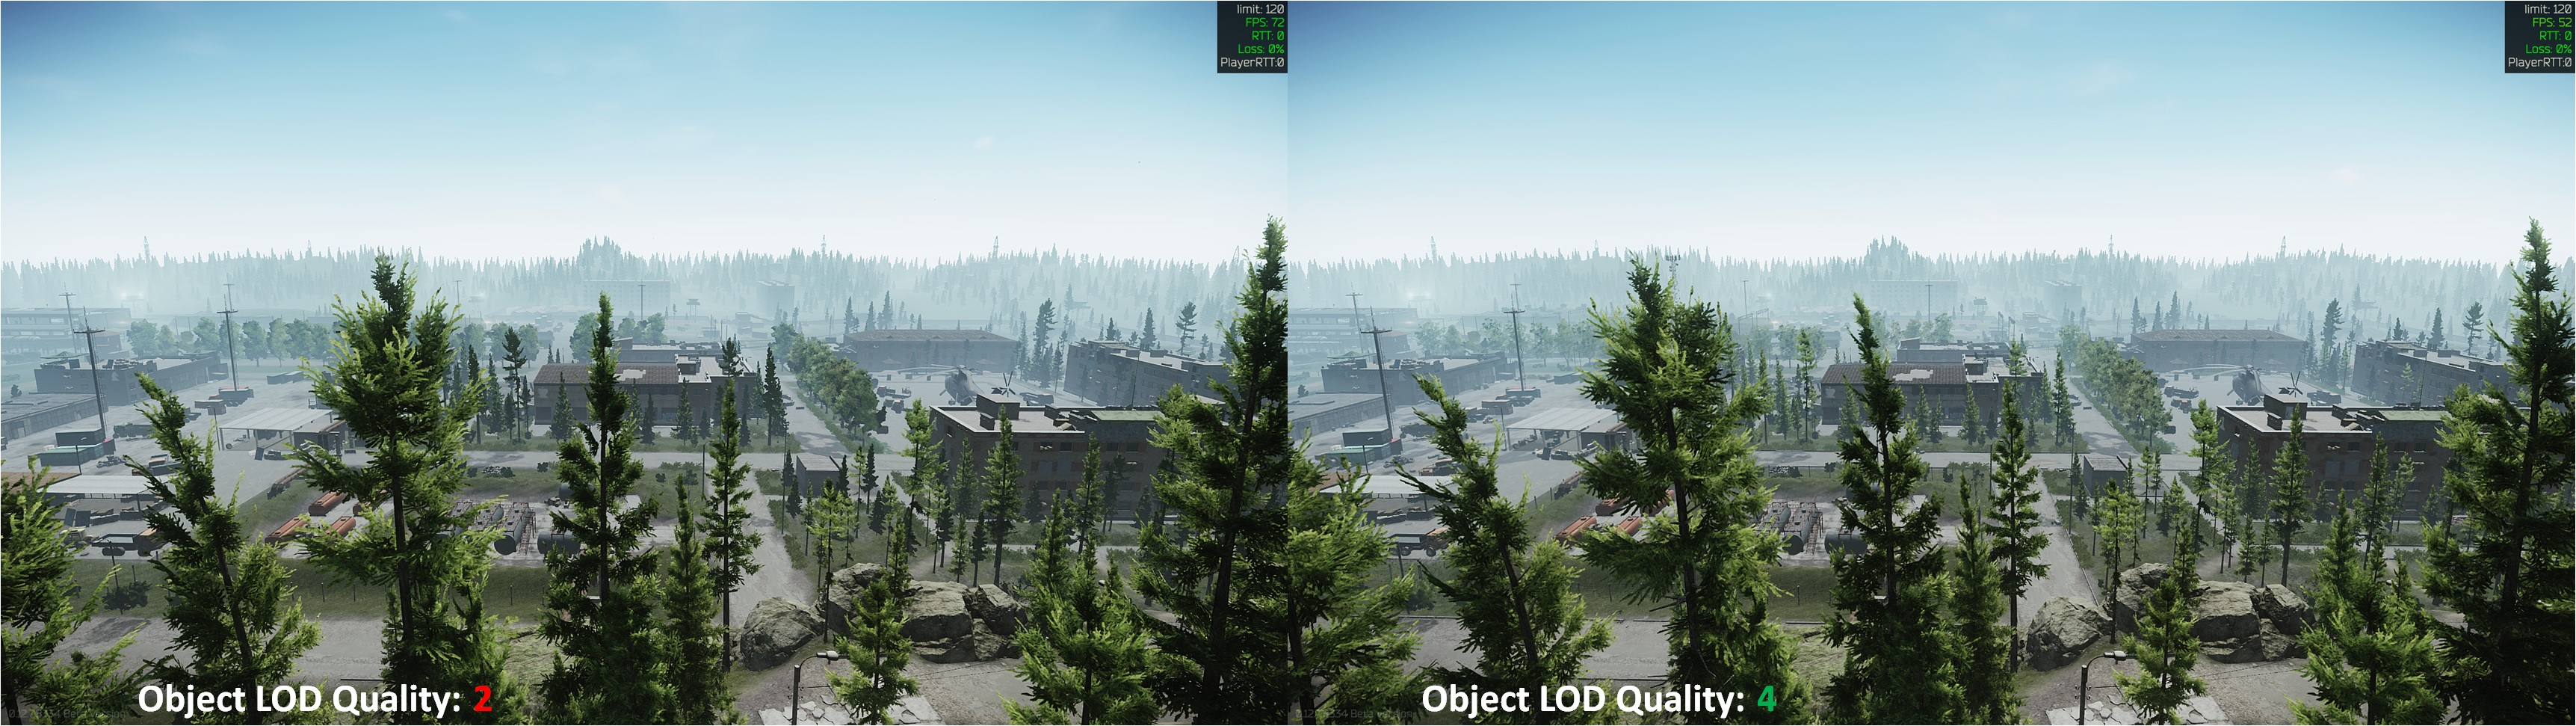 Tarkov Object LOD Quality Comparison